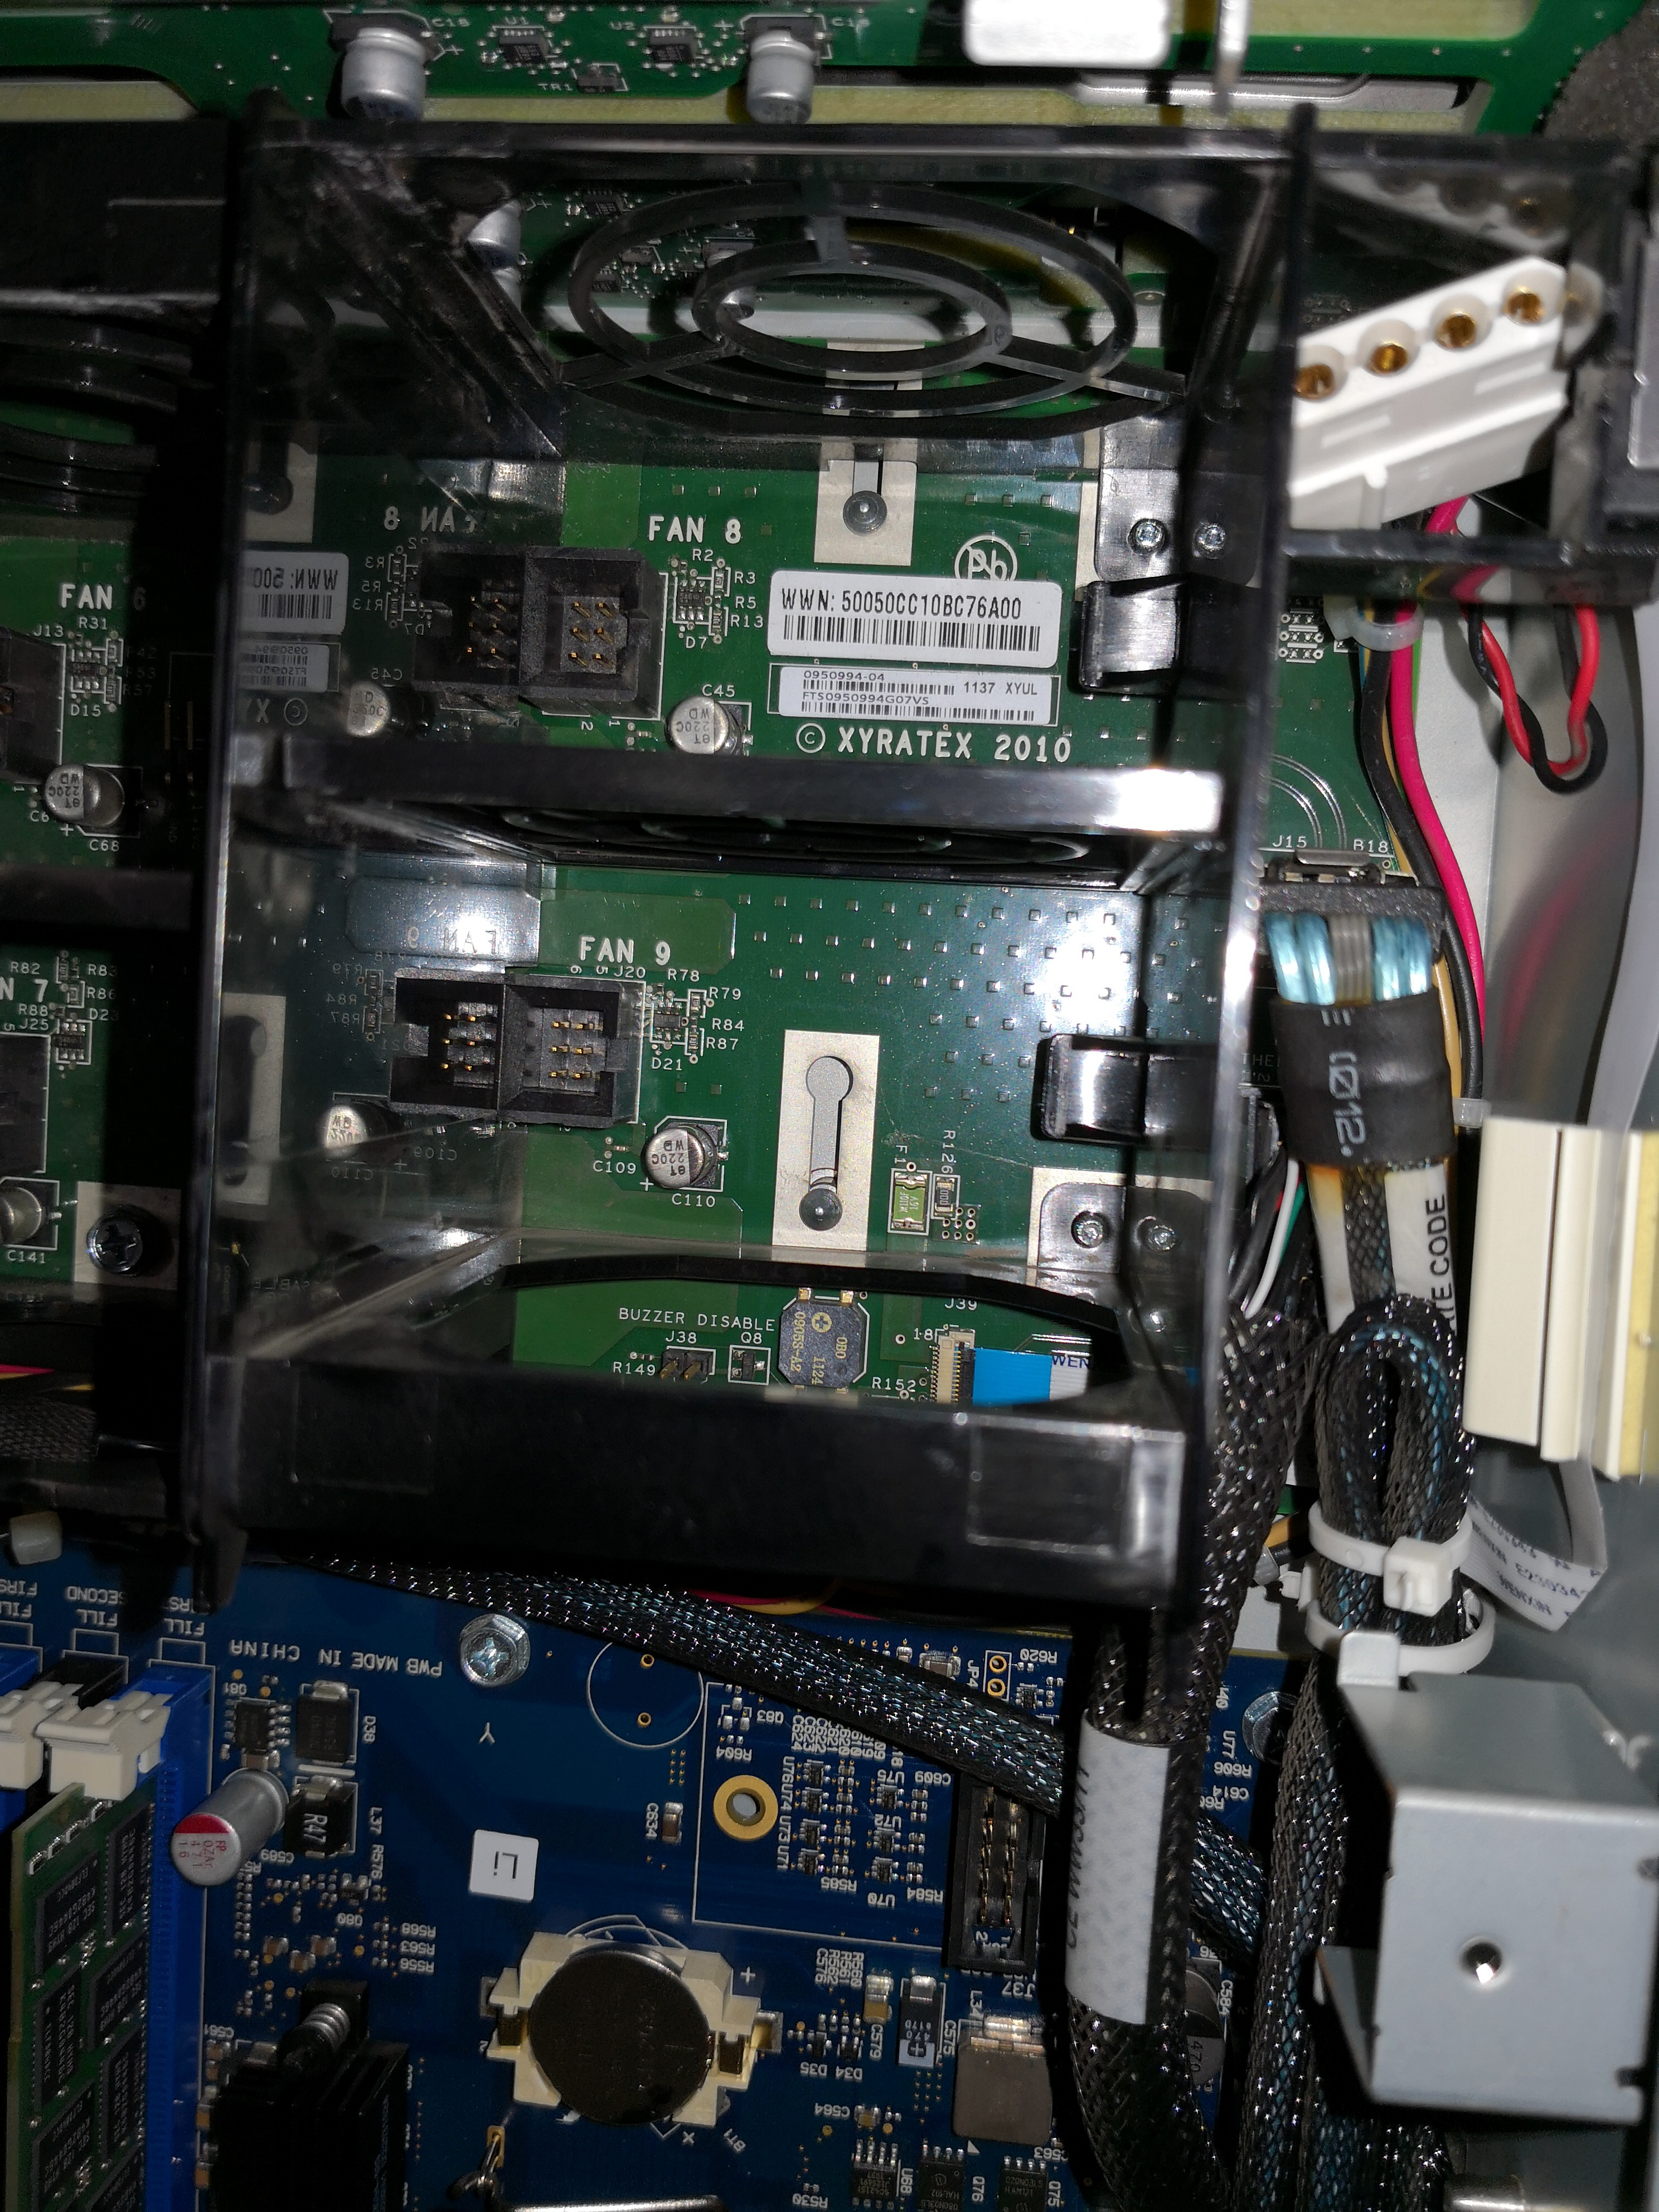 Please help me figure out what to do next! (Old corporate server